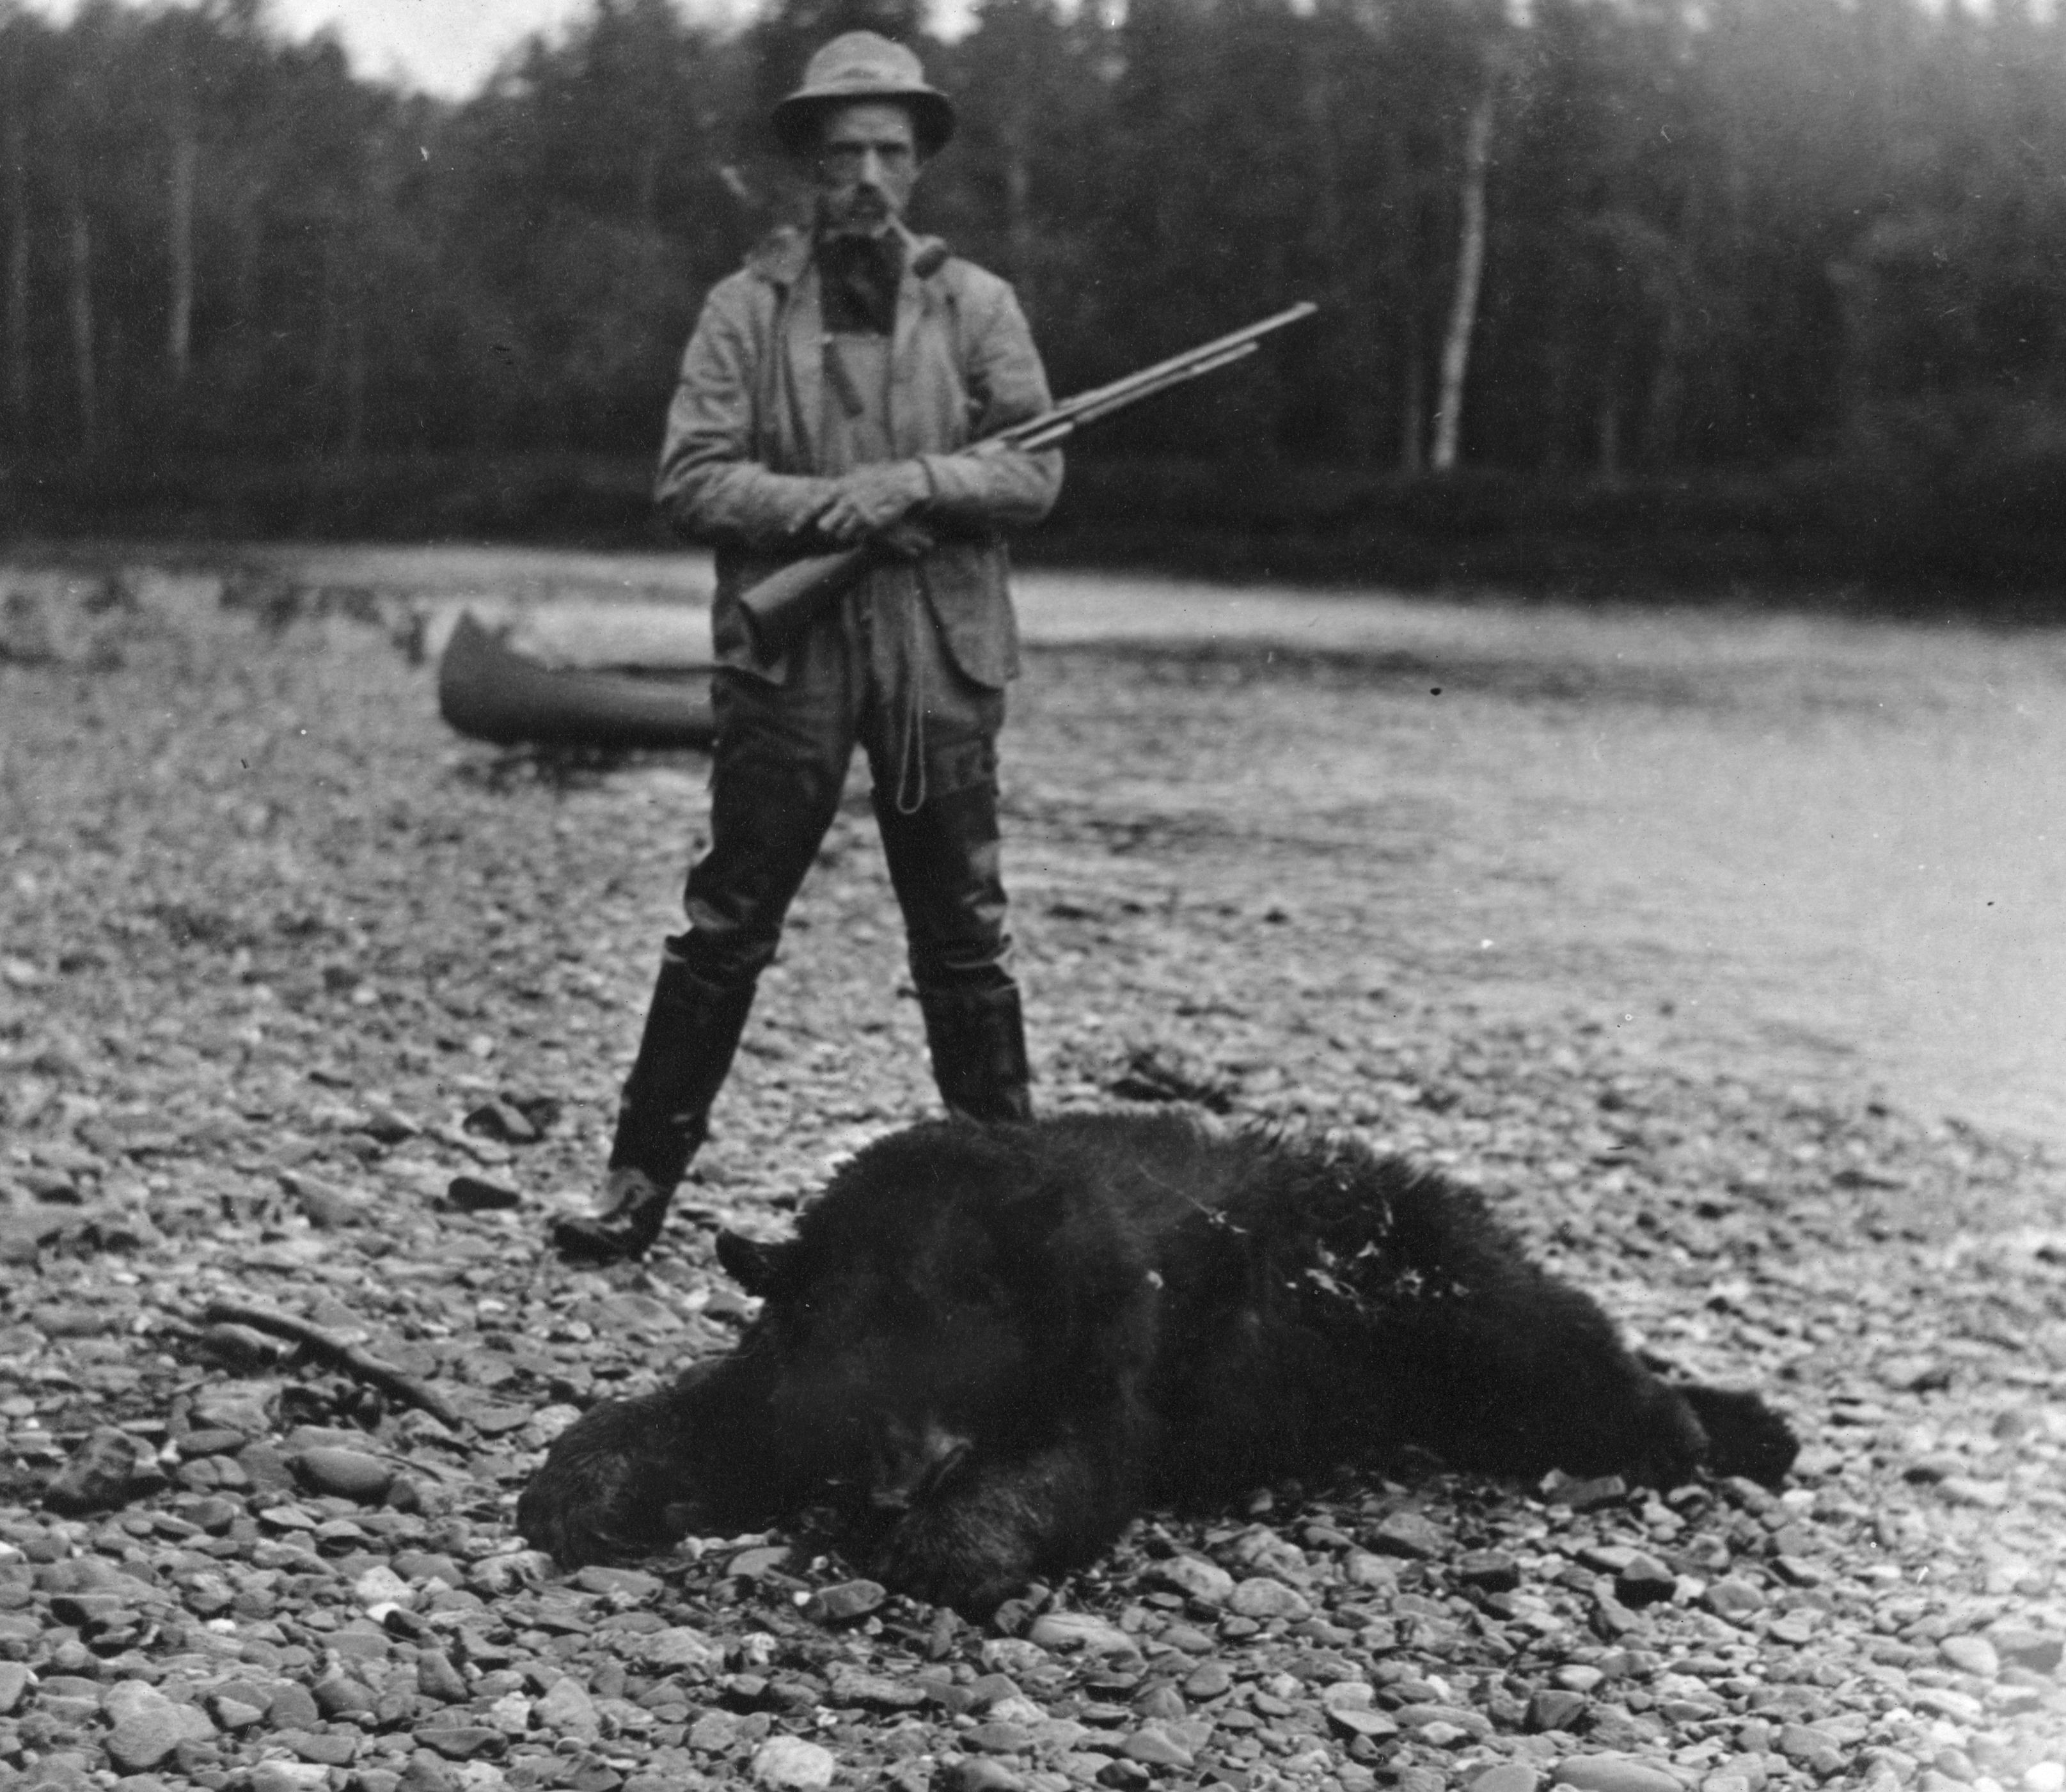 Hunting in the great depression